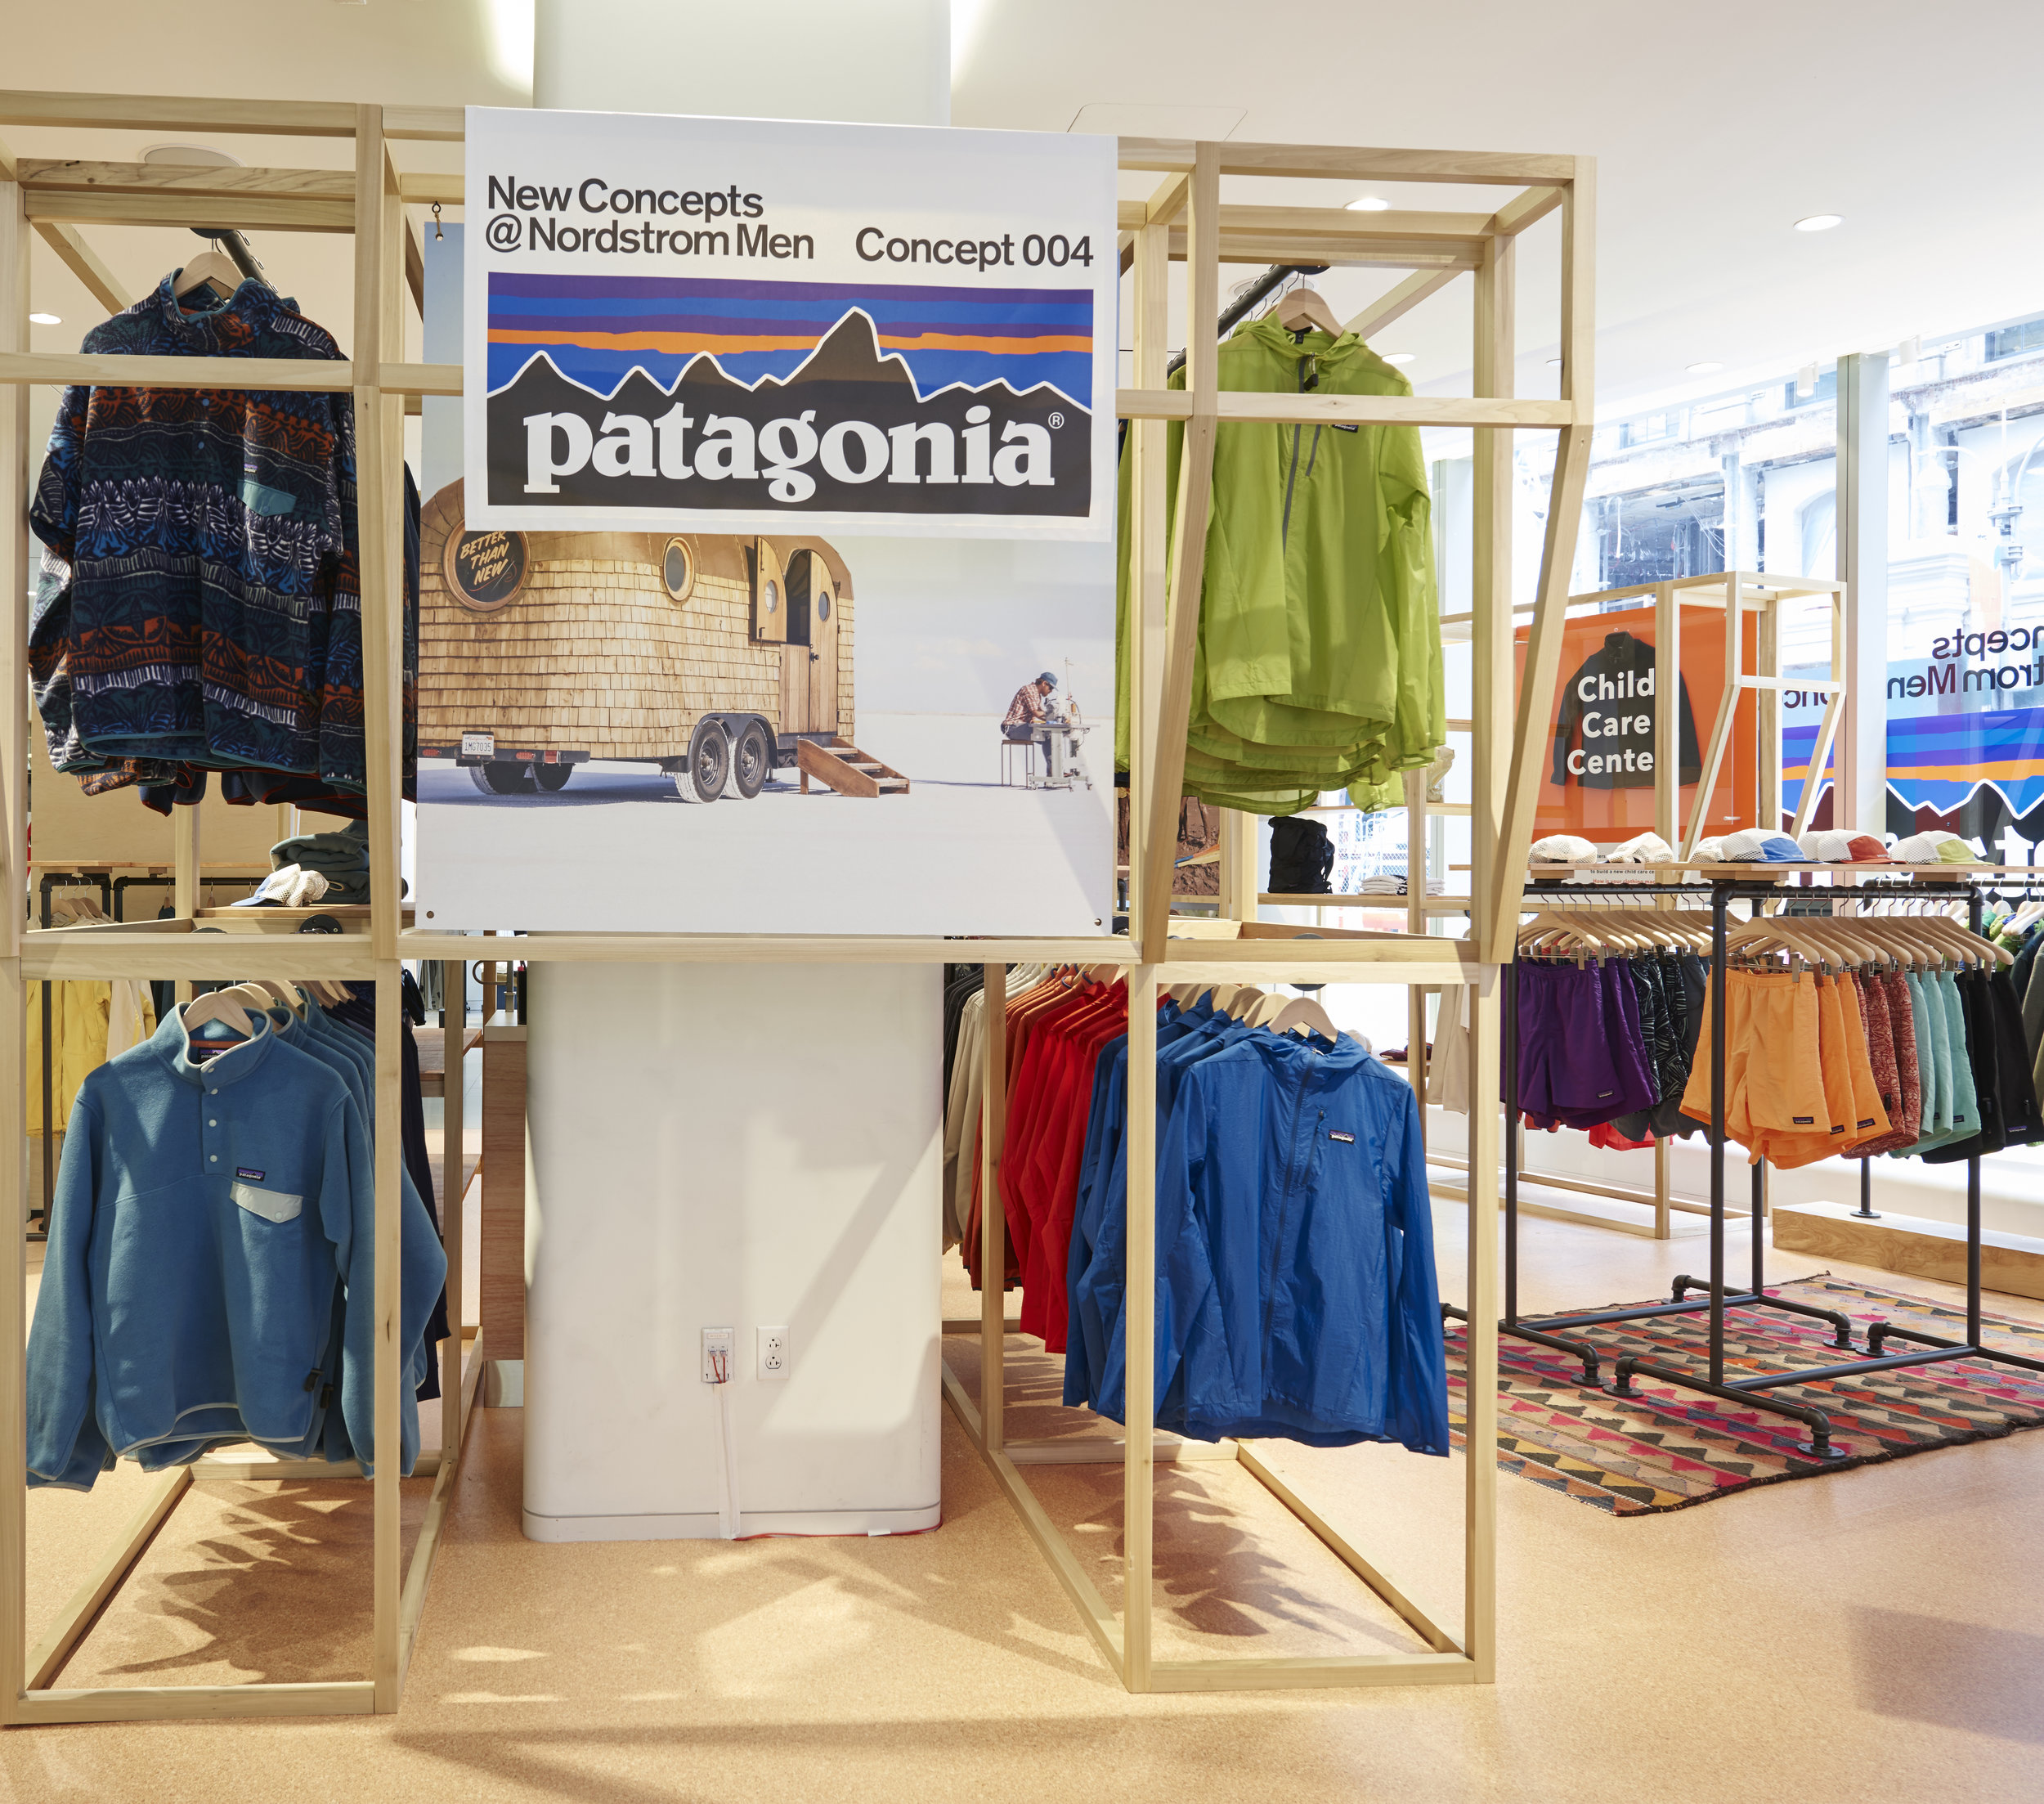 Concept 004 patagonia - Shop photo 4.jpg